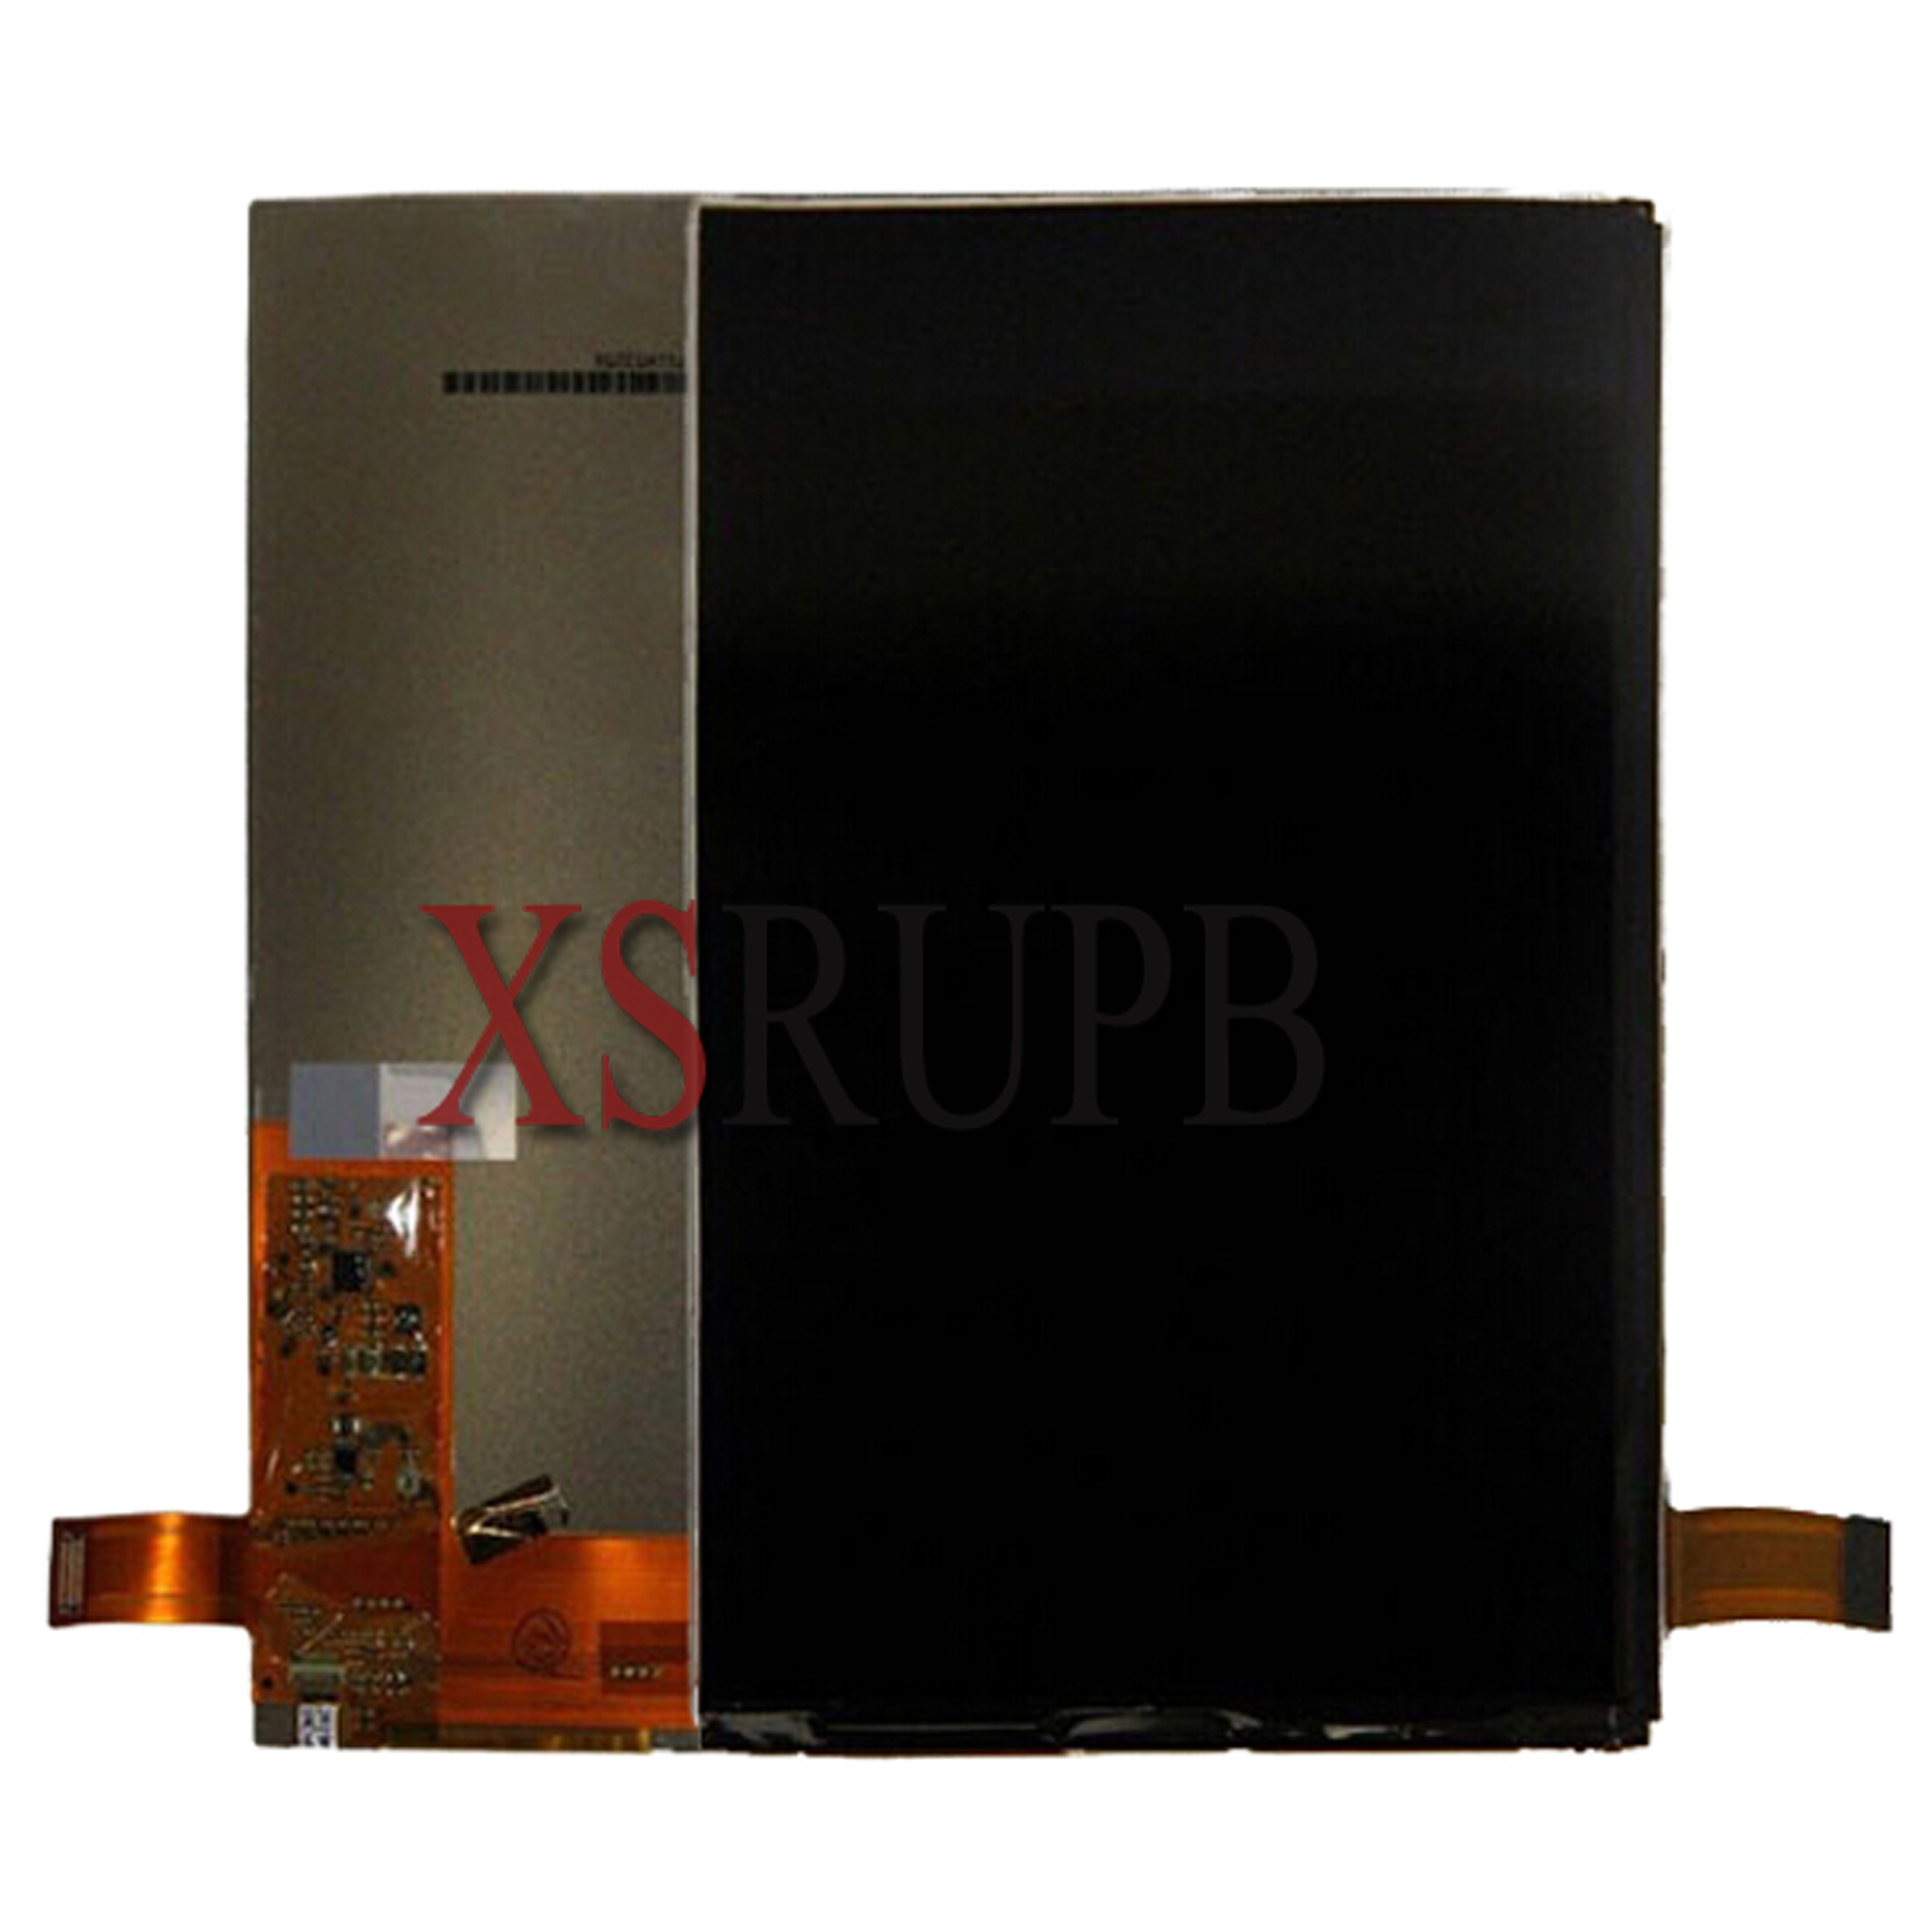 New LCD Display Matrix 7 inch Prestigio MultiPad PMT3777 3G TABLET LCD Screen replacement Free Shipping new lcd display for 10 1 prestigio multipad wize 3111 pmt3111 3g tablet lcd screen panel matrix replacement free shipping